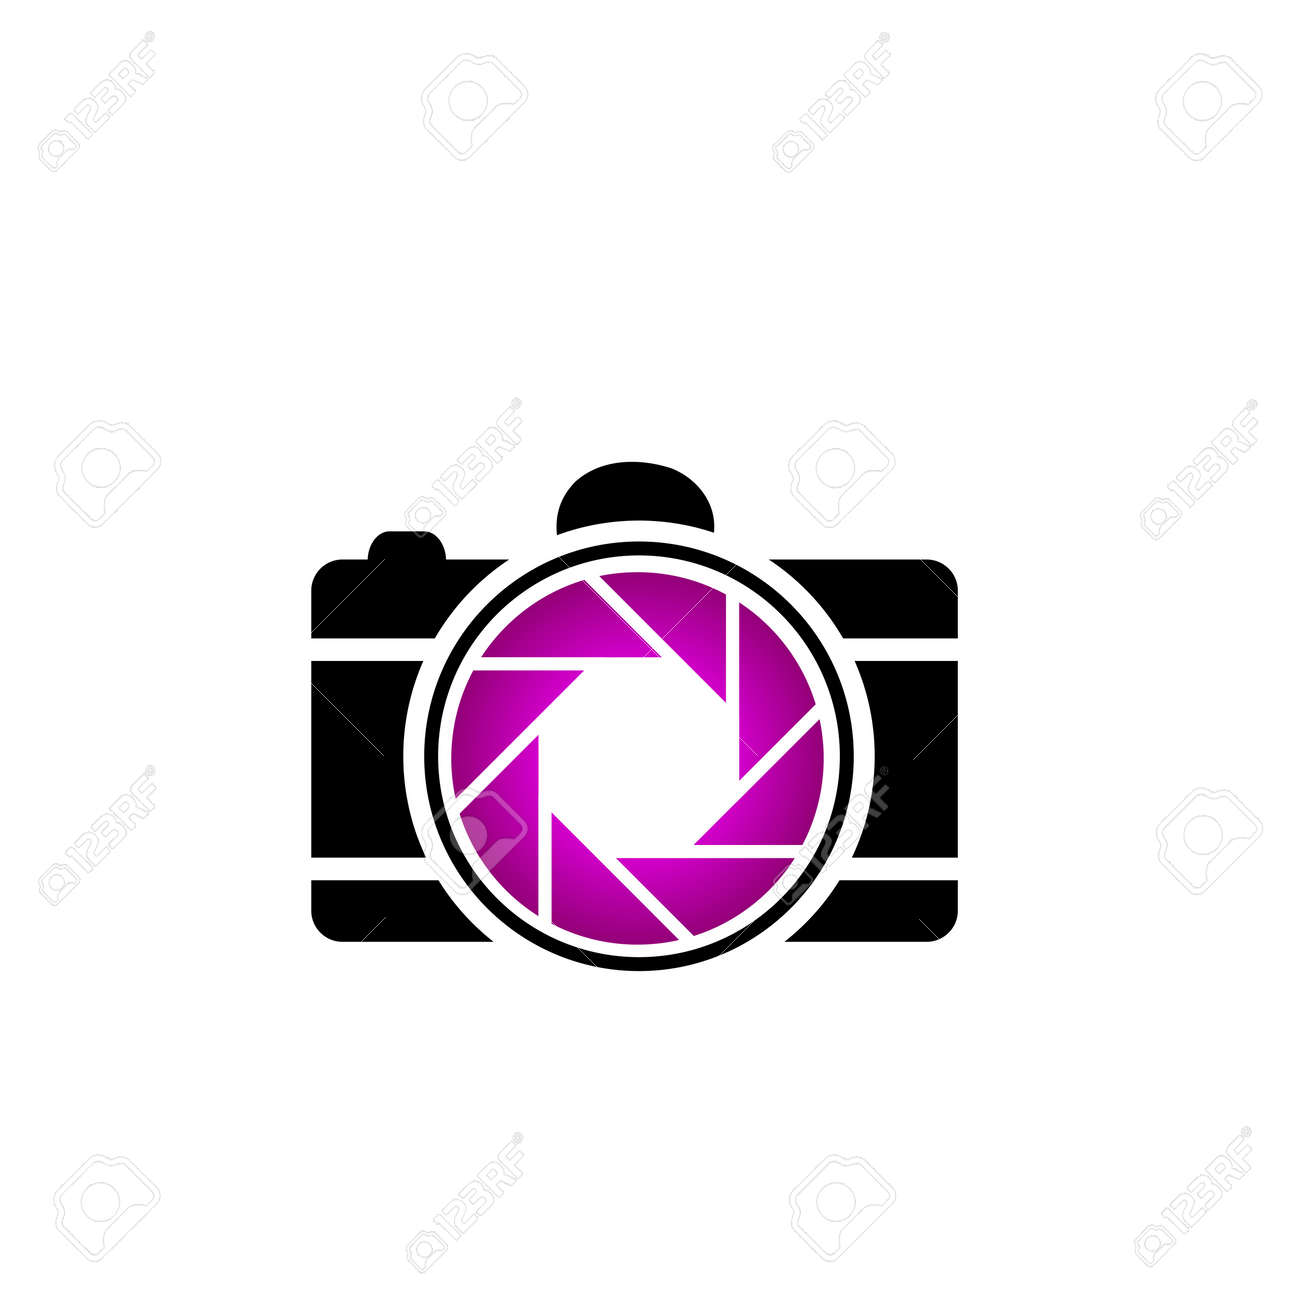 Camera Dslr Camera Logo photography royalty free cliparts vectors and stock illustration vector 17372682 logo camera